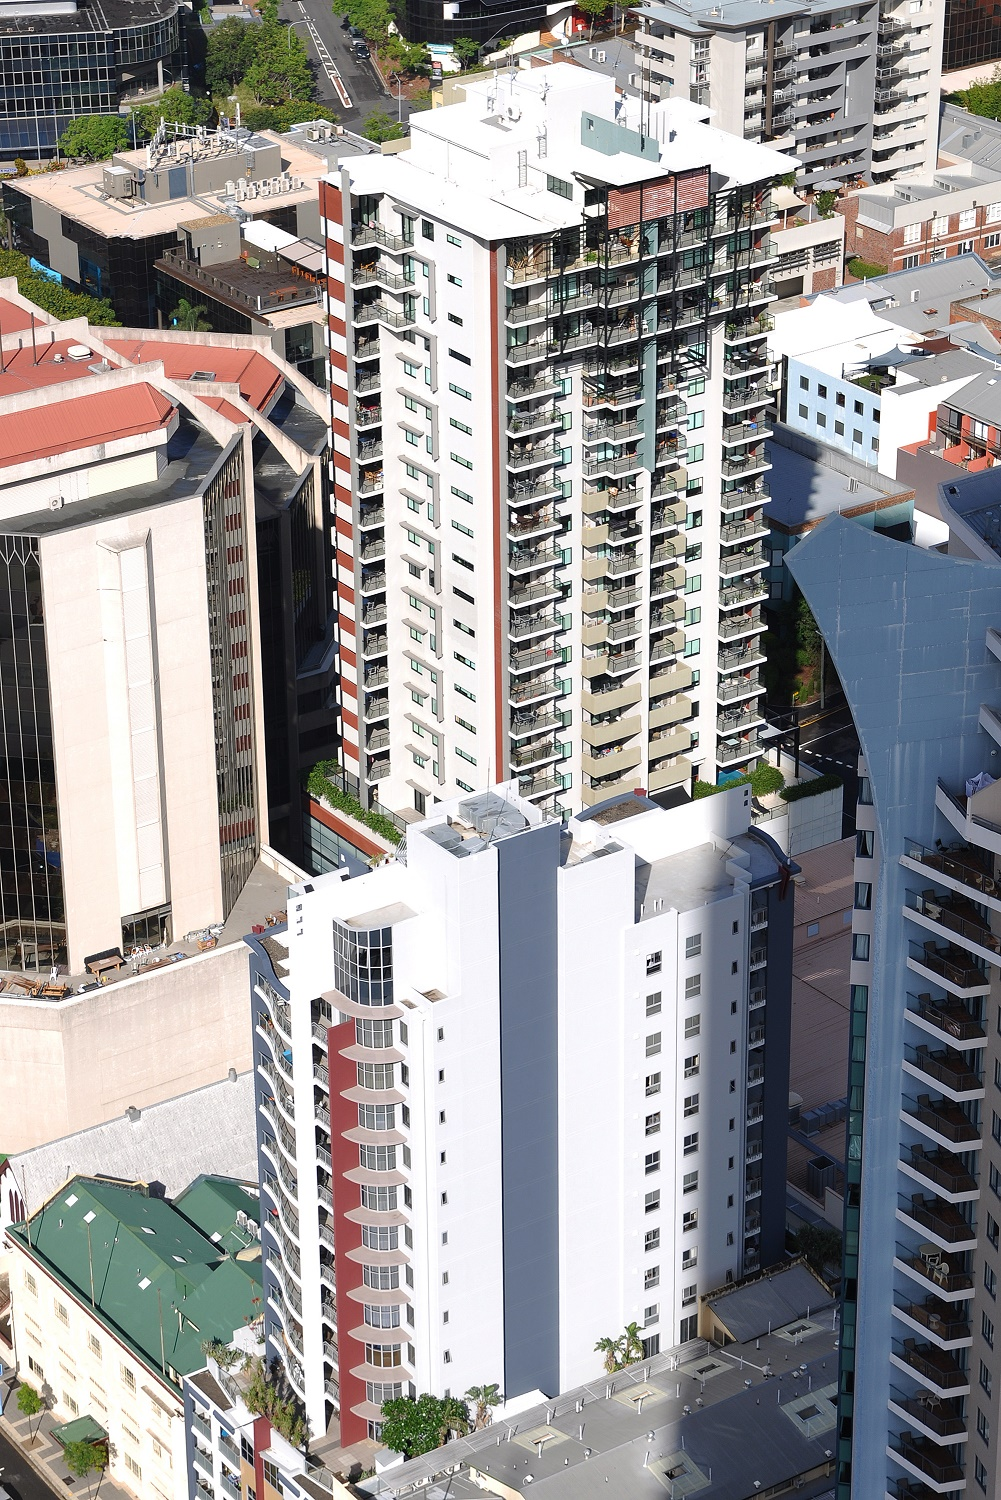 Apartments without unique features and in areas of medium-high density are likely to perform worst of all.